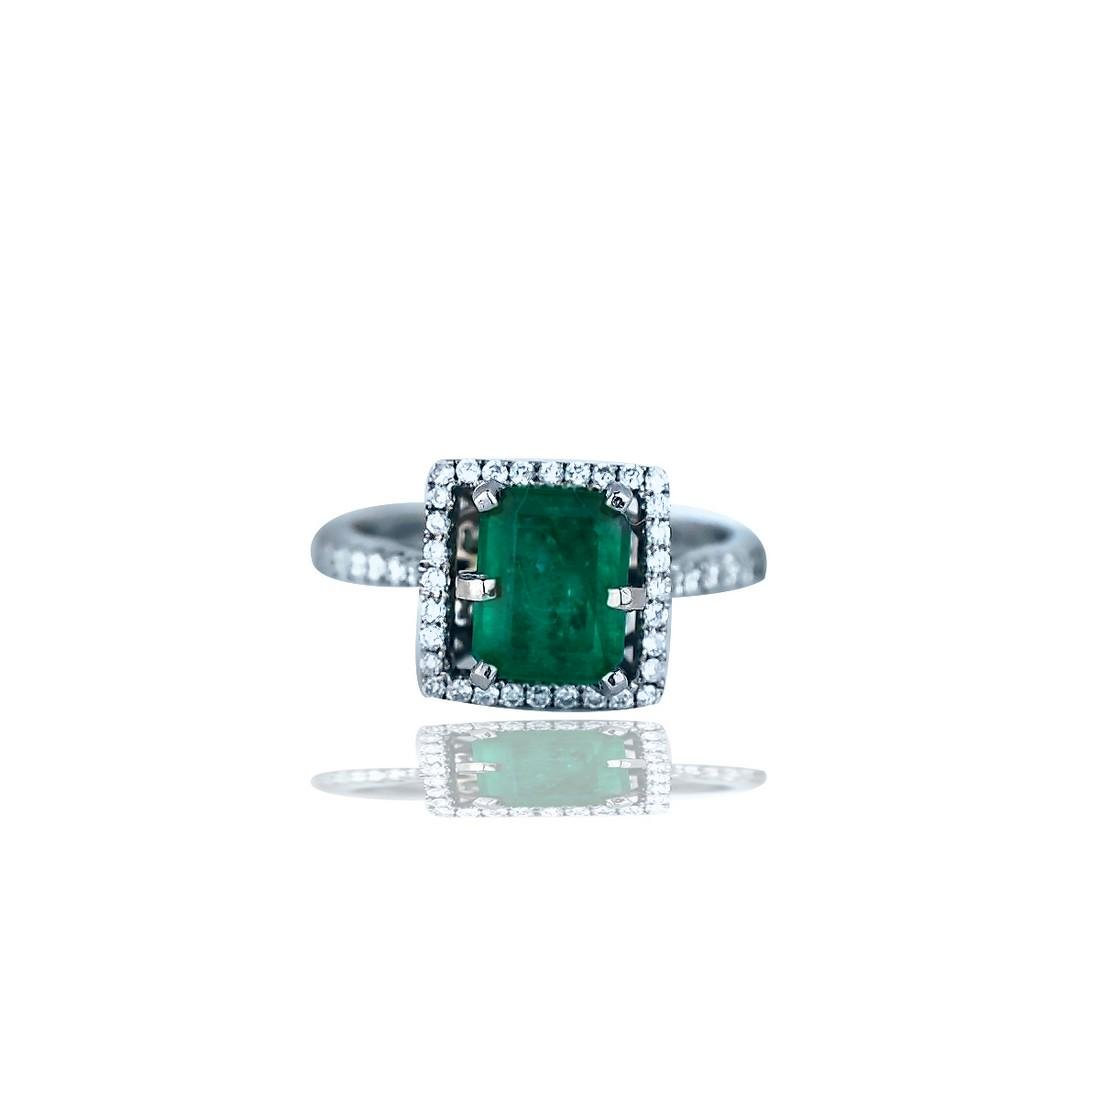 Stunning, 2.48 TCW, Colombian Emerald set in Halo